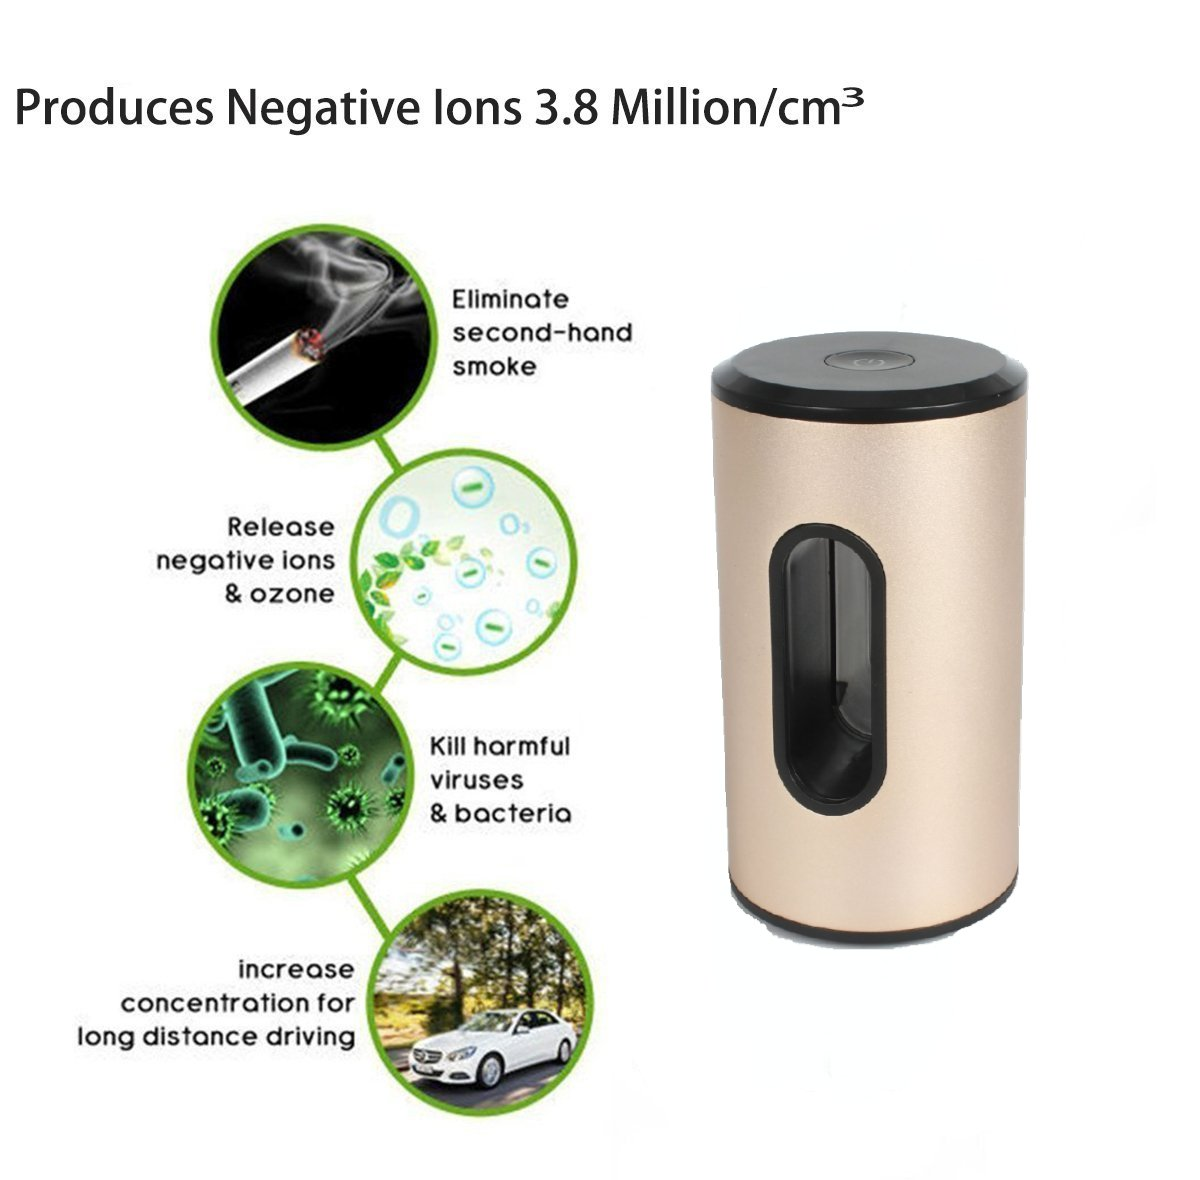 2018 Smart Car Air Ionizer, Portable for Home or Car Freshener, Purifier, Air Cleaner.Cleaner Air for Your Kids and Babies.Remove Smoke, Dust and Pollen, Reduce Bad Odors. Kills Bacteria and Viruses, Air Gooood